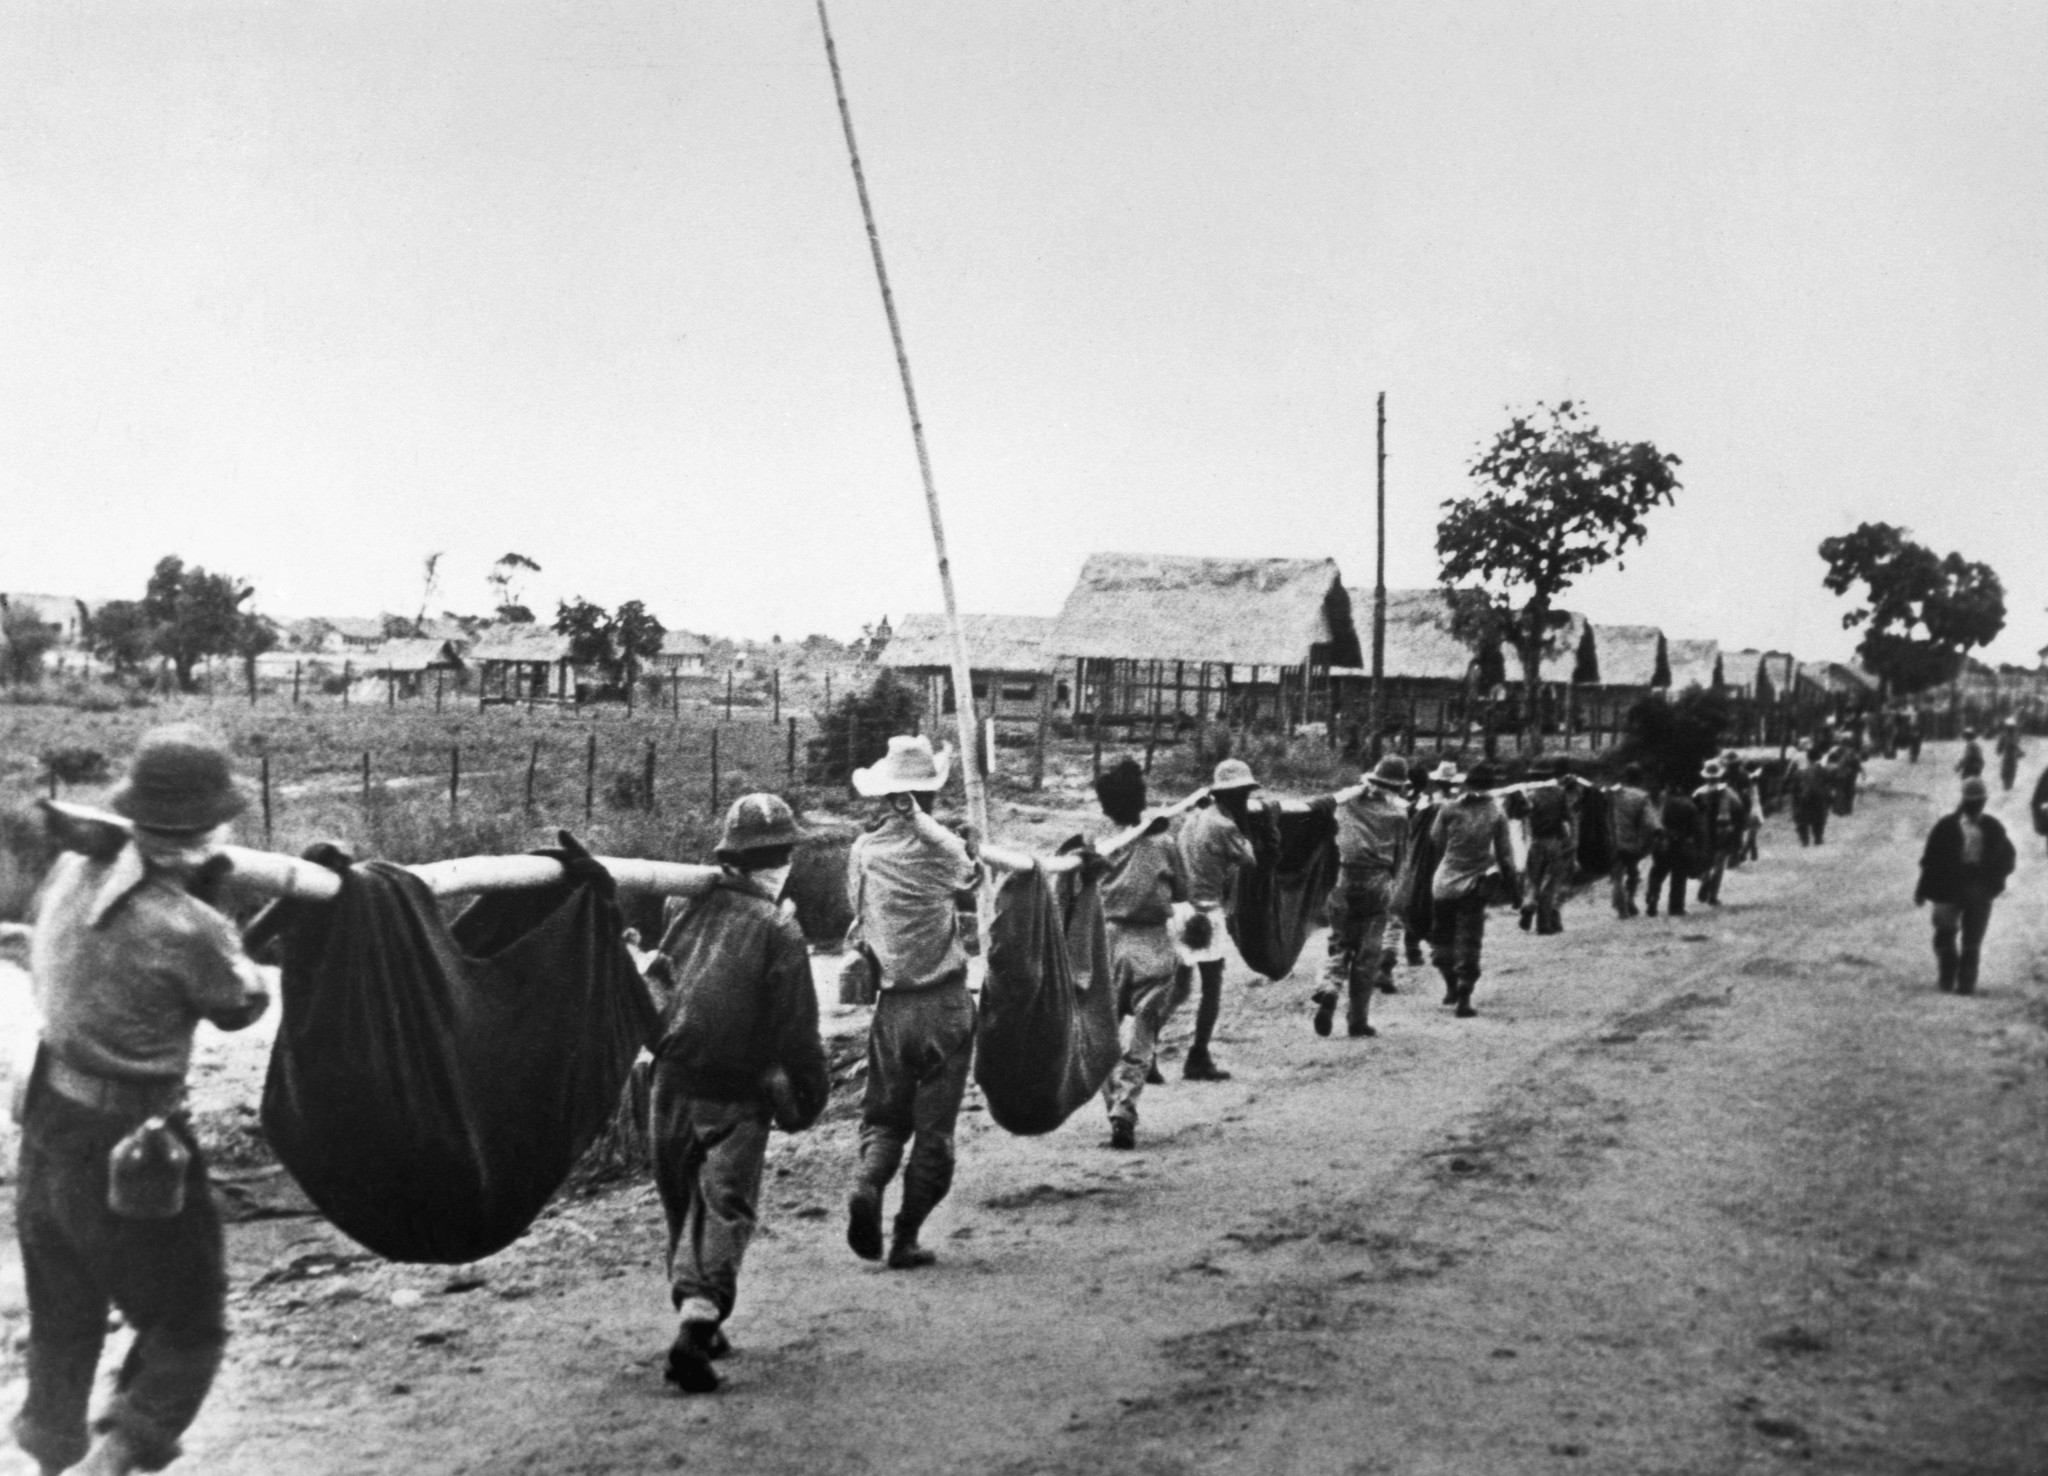 American prisoners of war use improvised litters to carry casualties in April 1942 as they near a Japanese POW camp about 65 miles inland from the Bataan Peninsula.